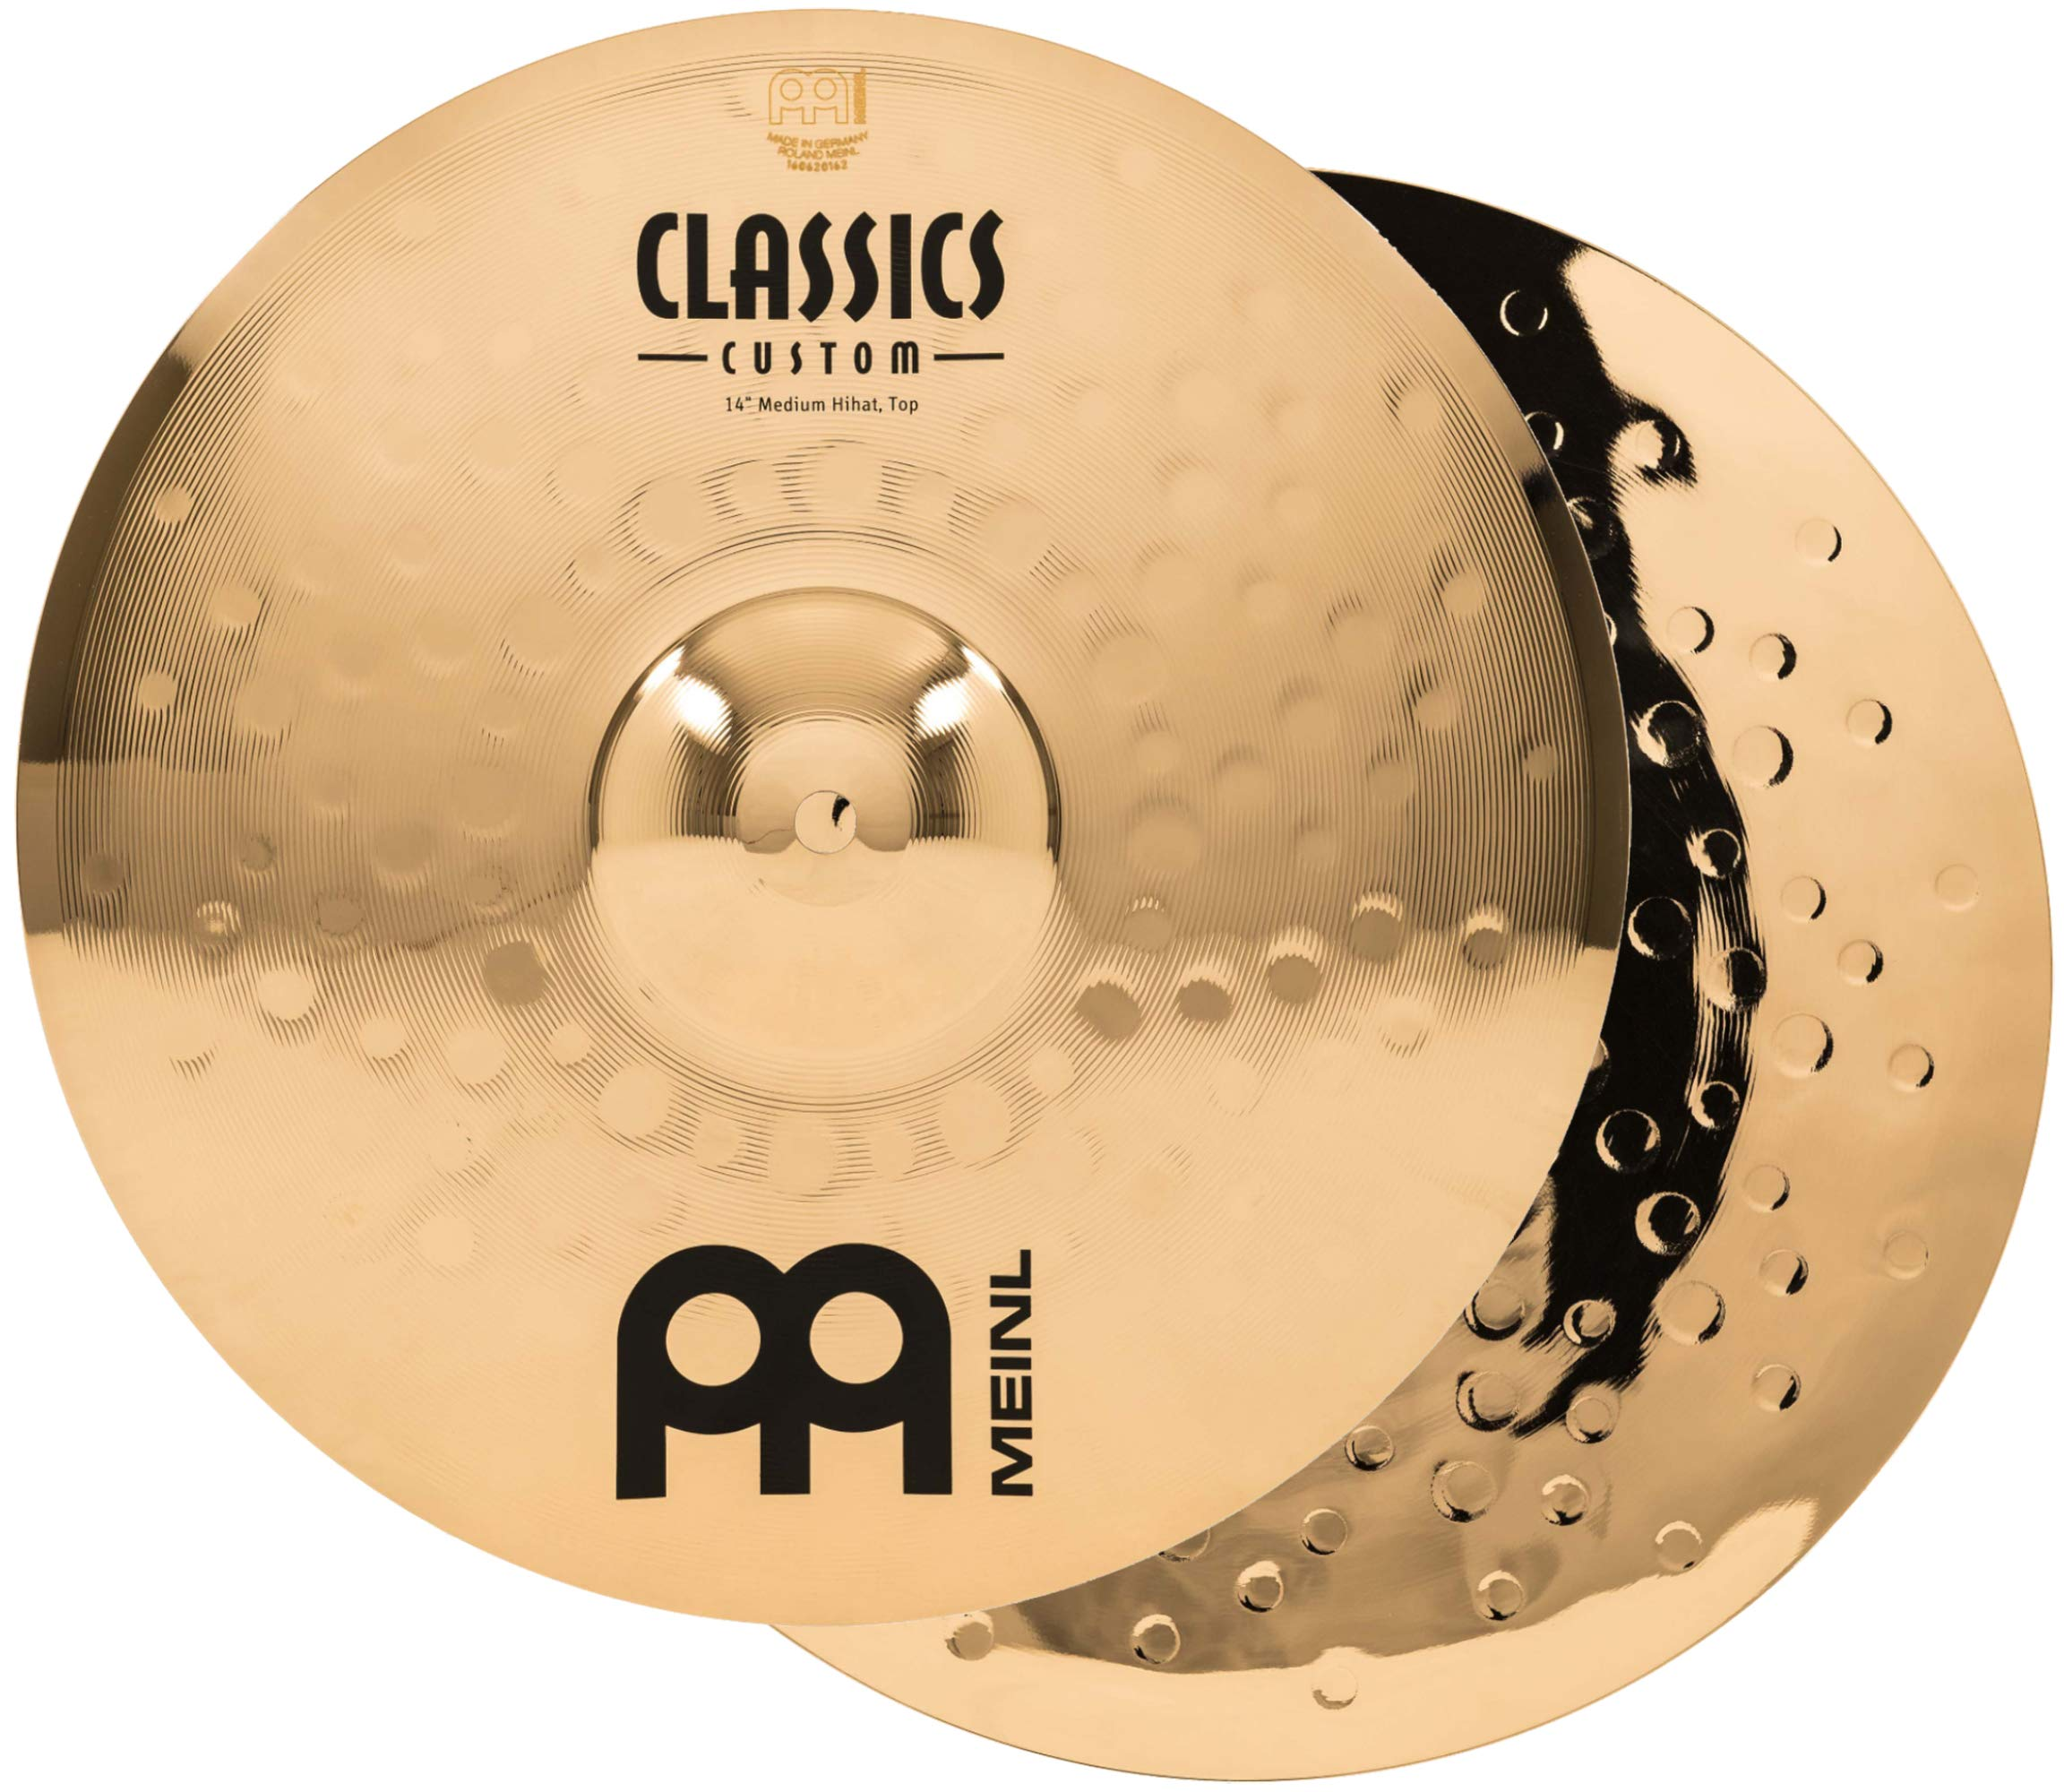 Meinl 14'' Medium Hihat (Hi Hat) Cymbal Pair  -  Classics Custom Brilliant - Made in Germany, 2-YEAR WARRANTY (CC14MH-B) by Meinl Cymbals